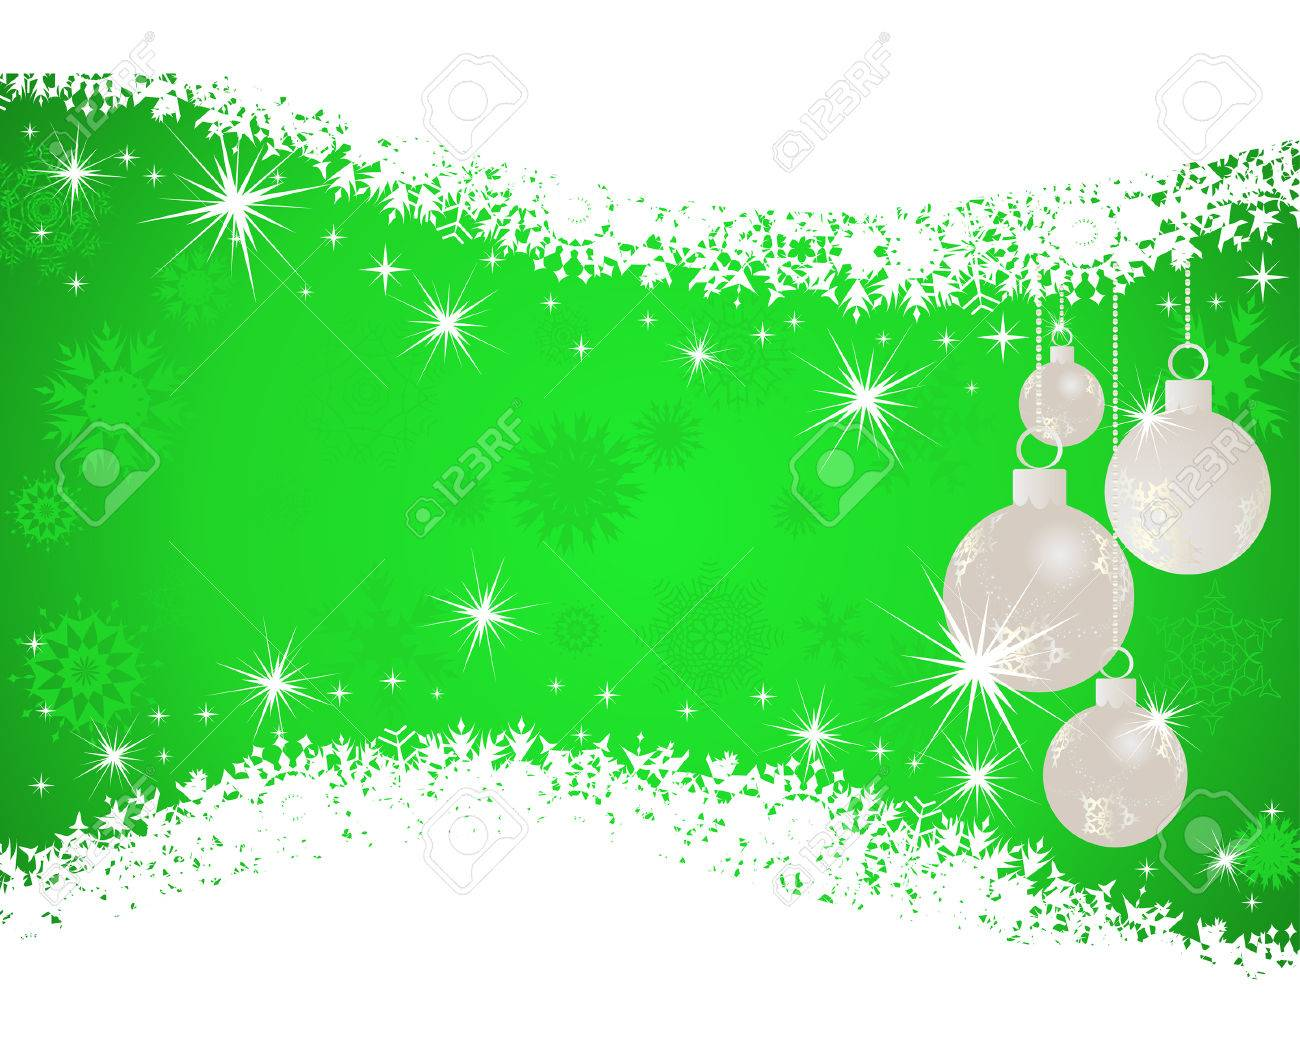 Beautiful vector christmas new year background for design use - Beautiful Vector Christmas New Year Background For Design Use Stock Vector 5804630